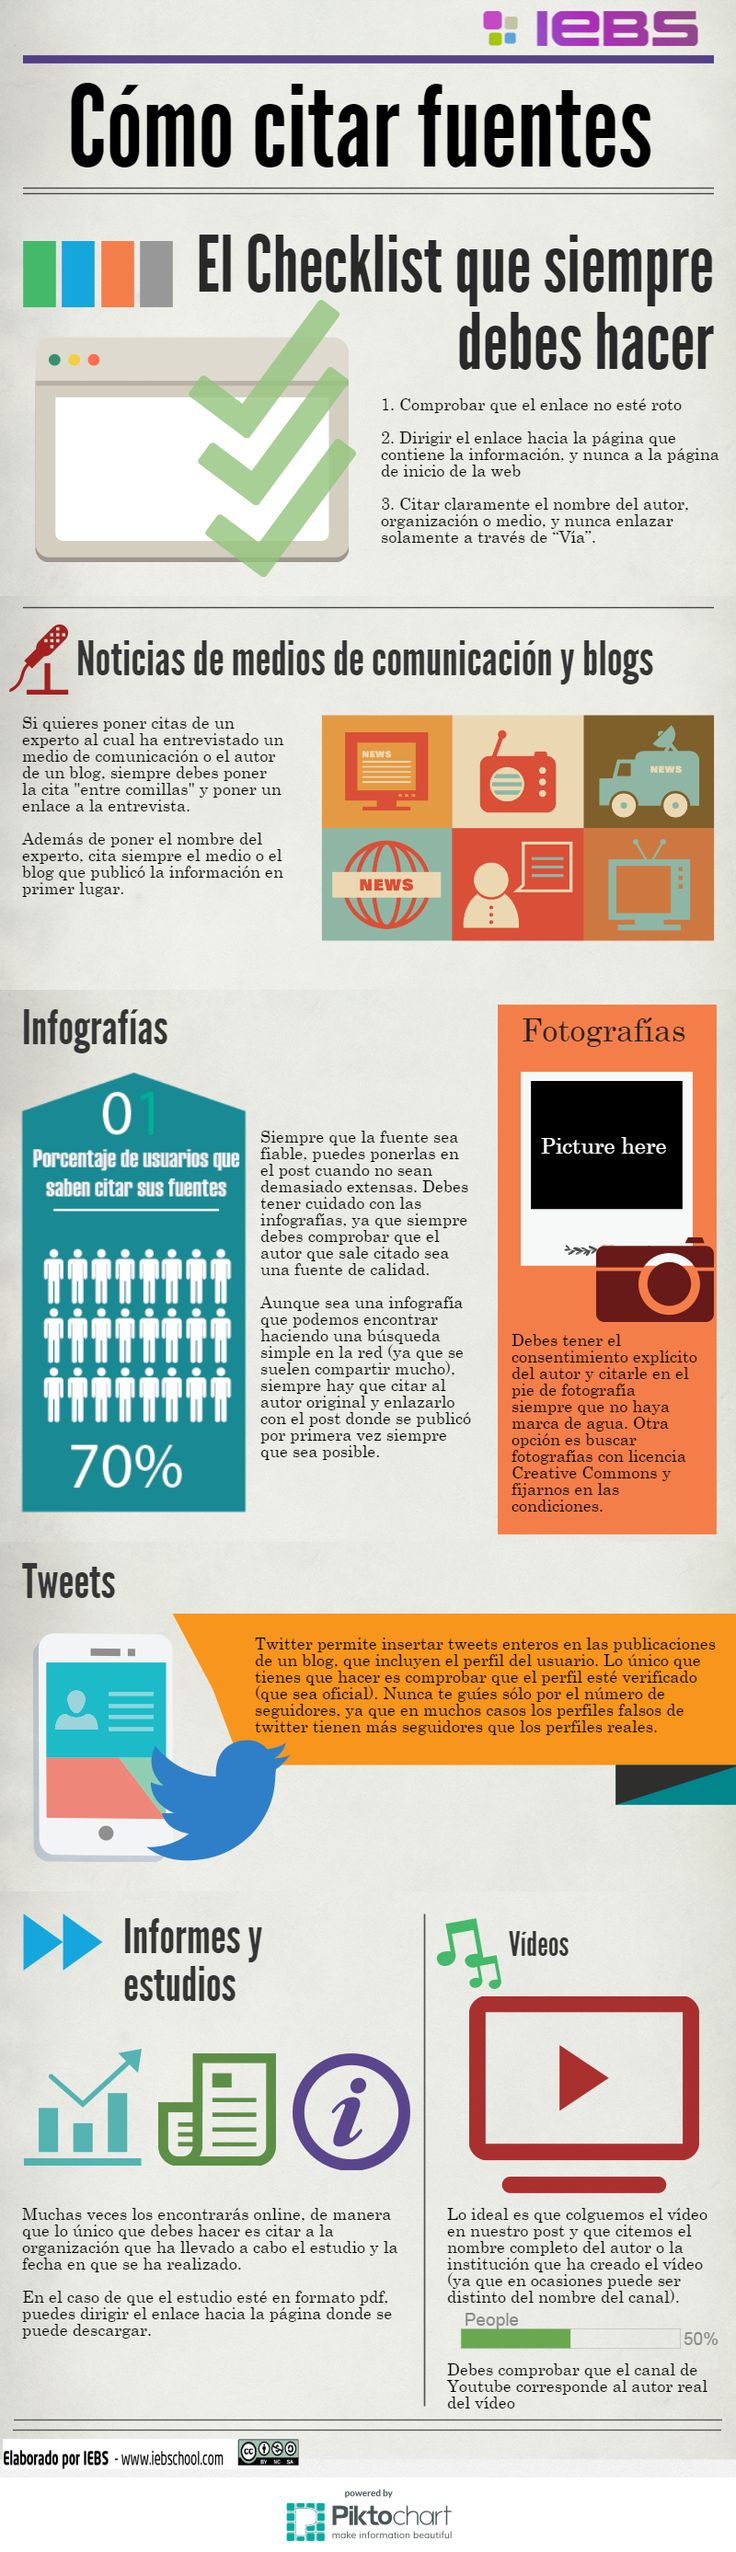 Cómo citar fuentes en tu blog #periodismodigital #contentmarketing #marketingdigital #marketingdecontenidos